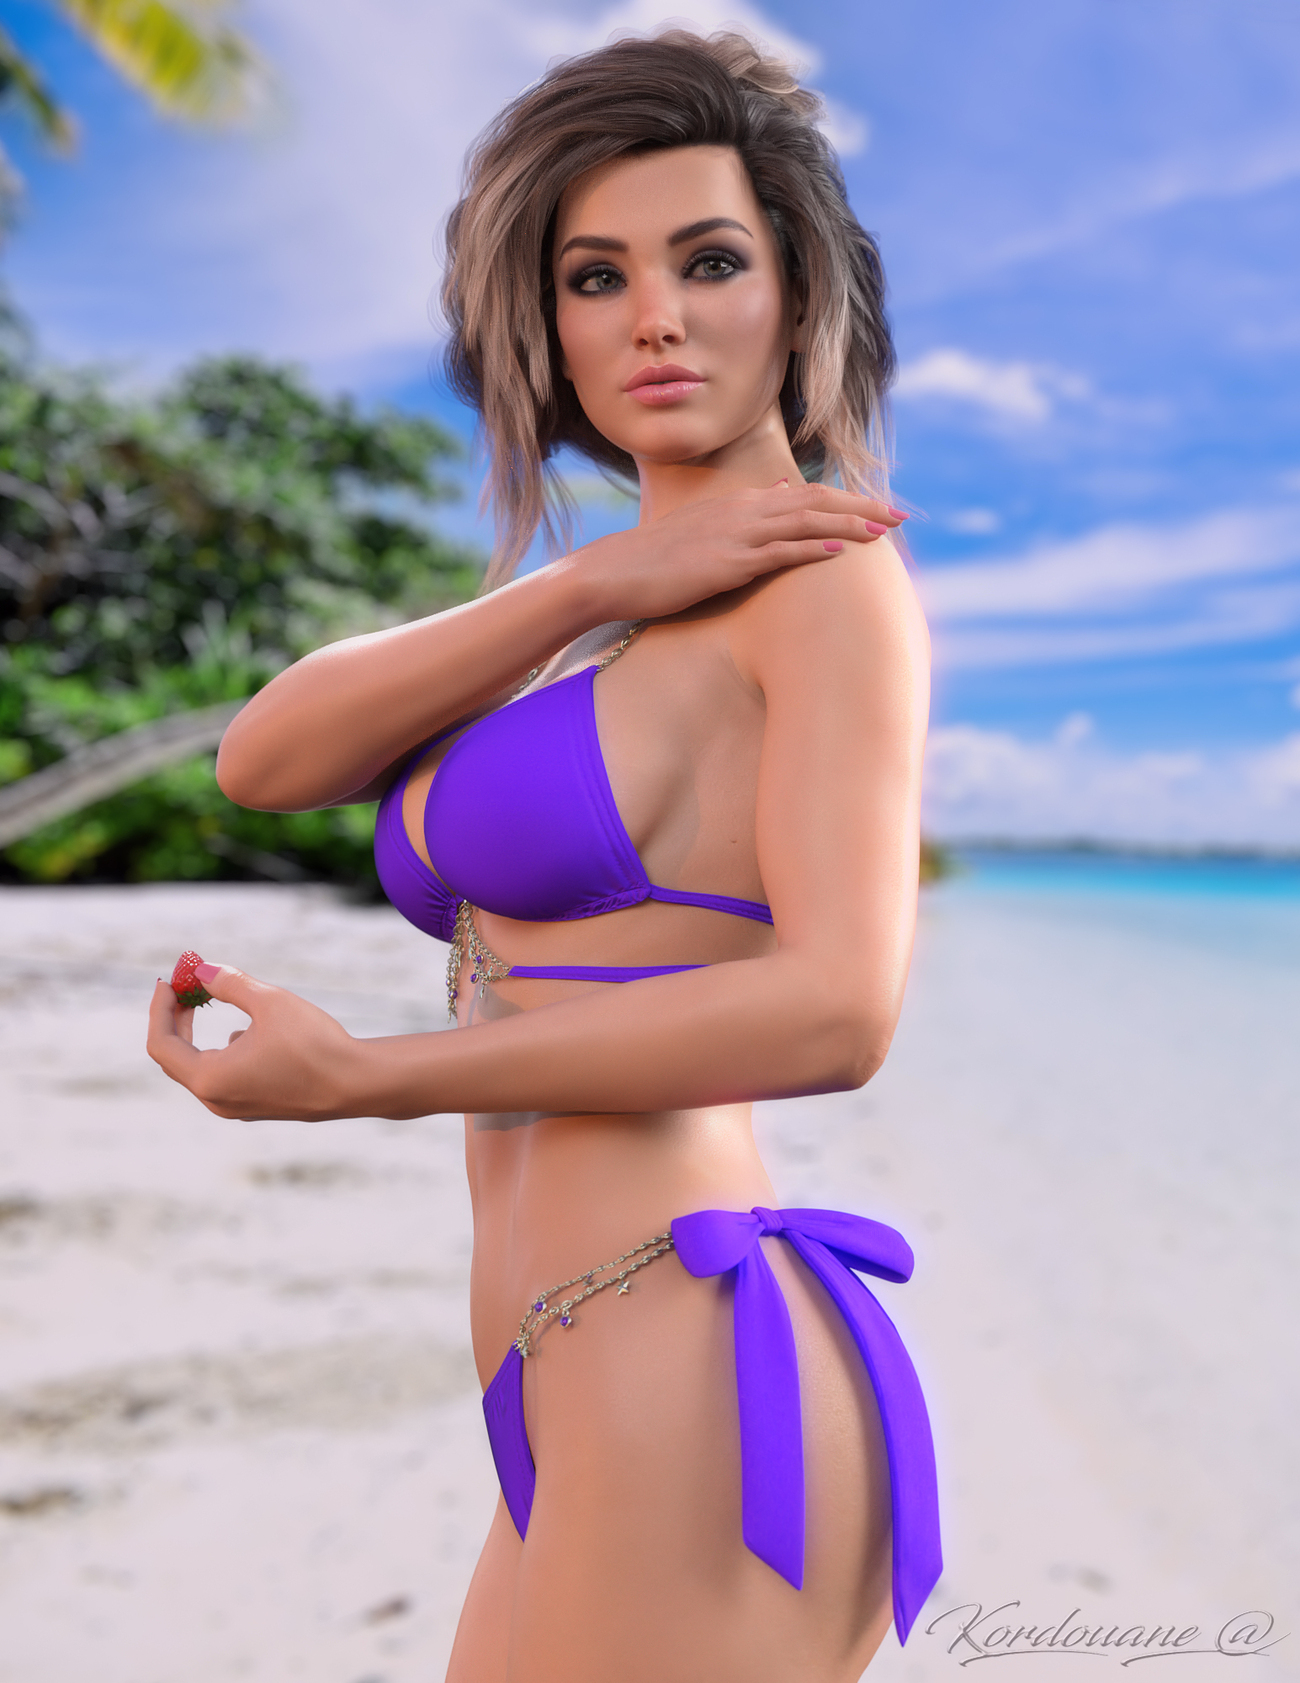 New swimwear collection 2021 by Kordouane